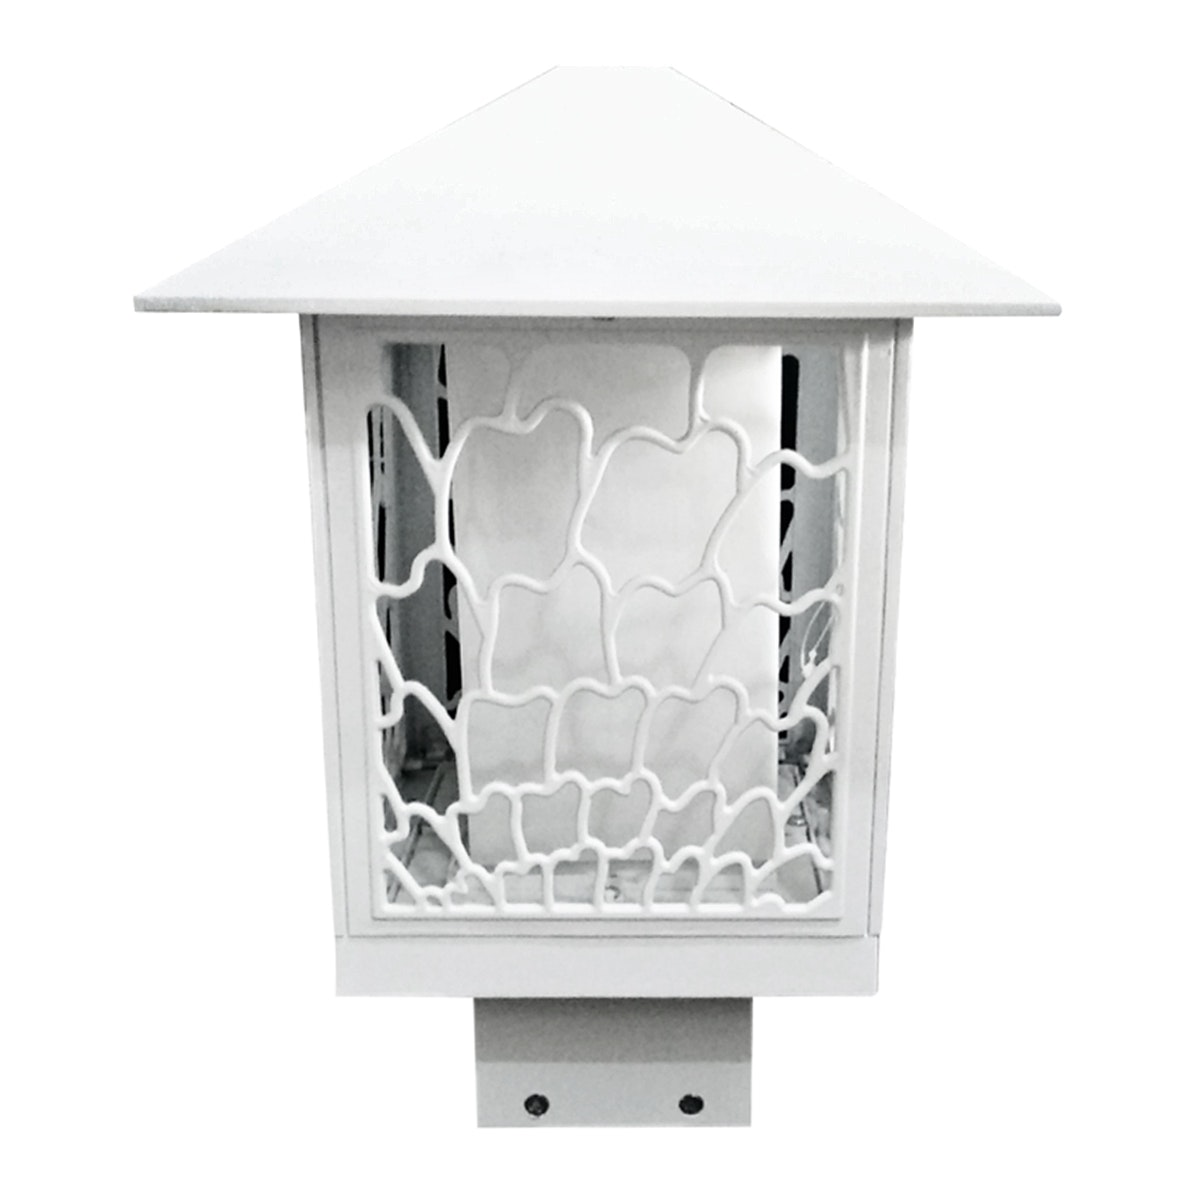 3+Projects Lawn Gate Lamp White E27 socket, PC diffuser,aluminium material, IP44 226*304 MAX 40W,CFL